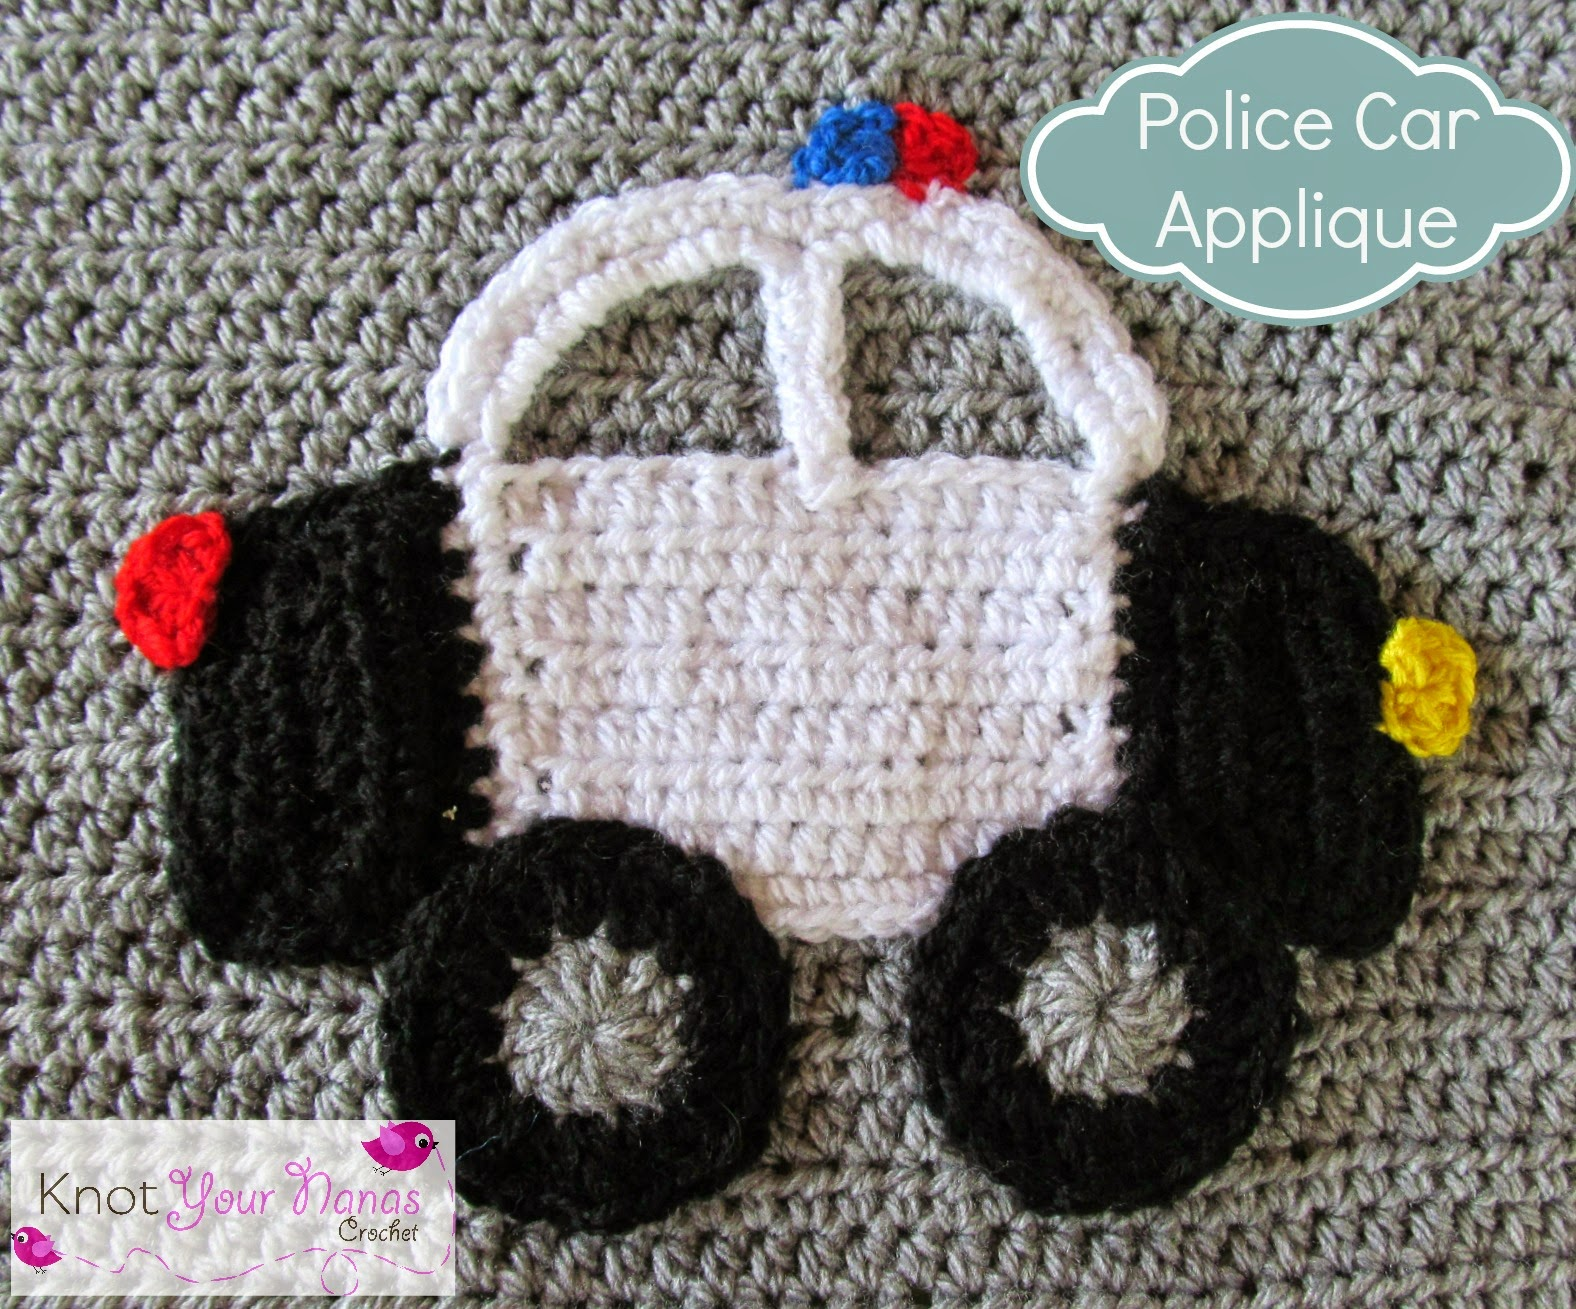 Crochet-Police-Car-Applique